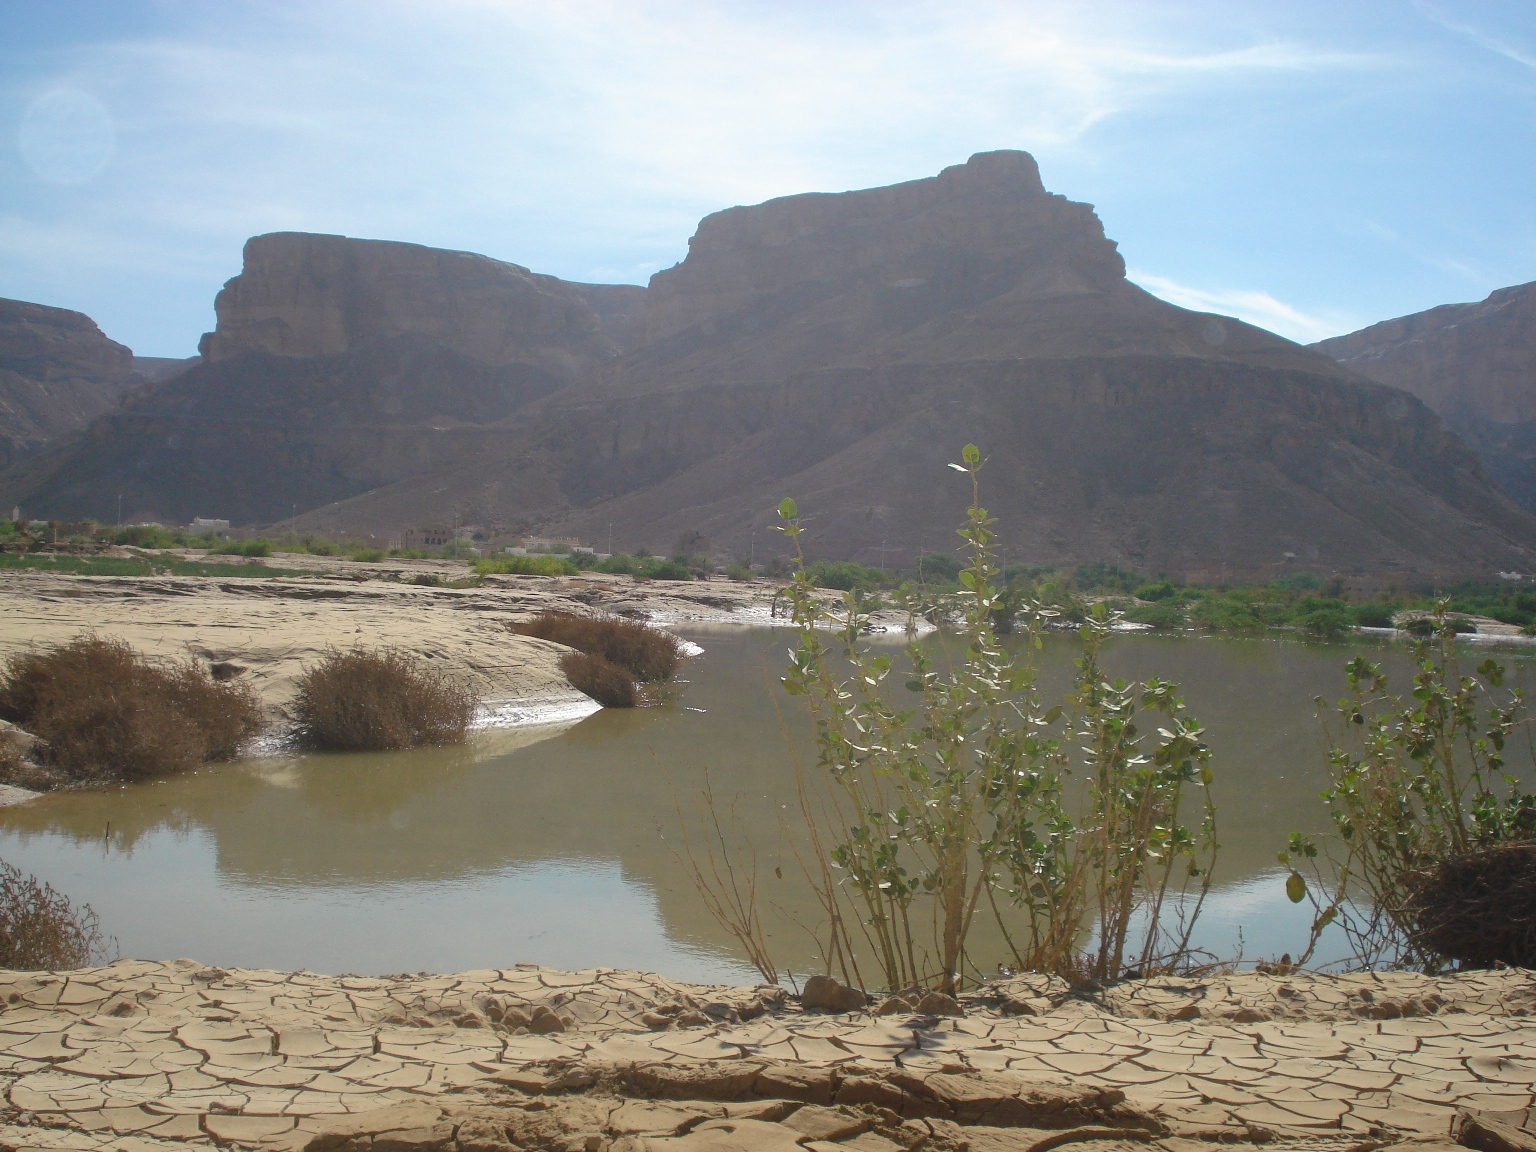 Floods have destroyed thousands of farms in Hadramaut